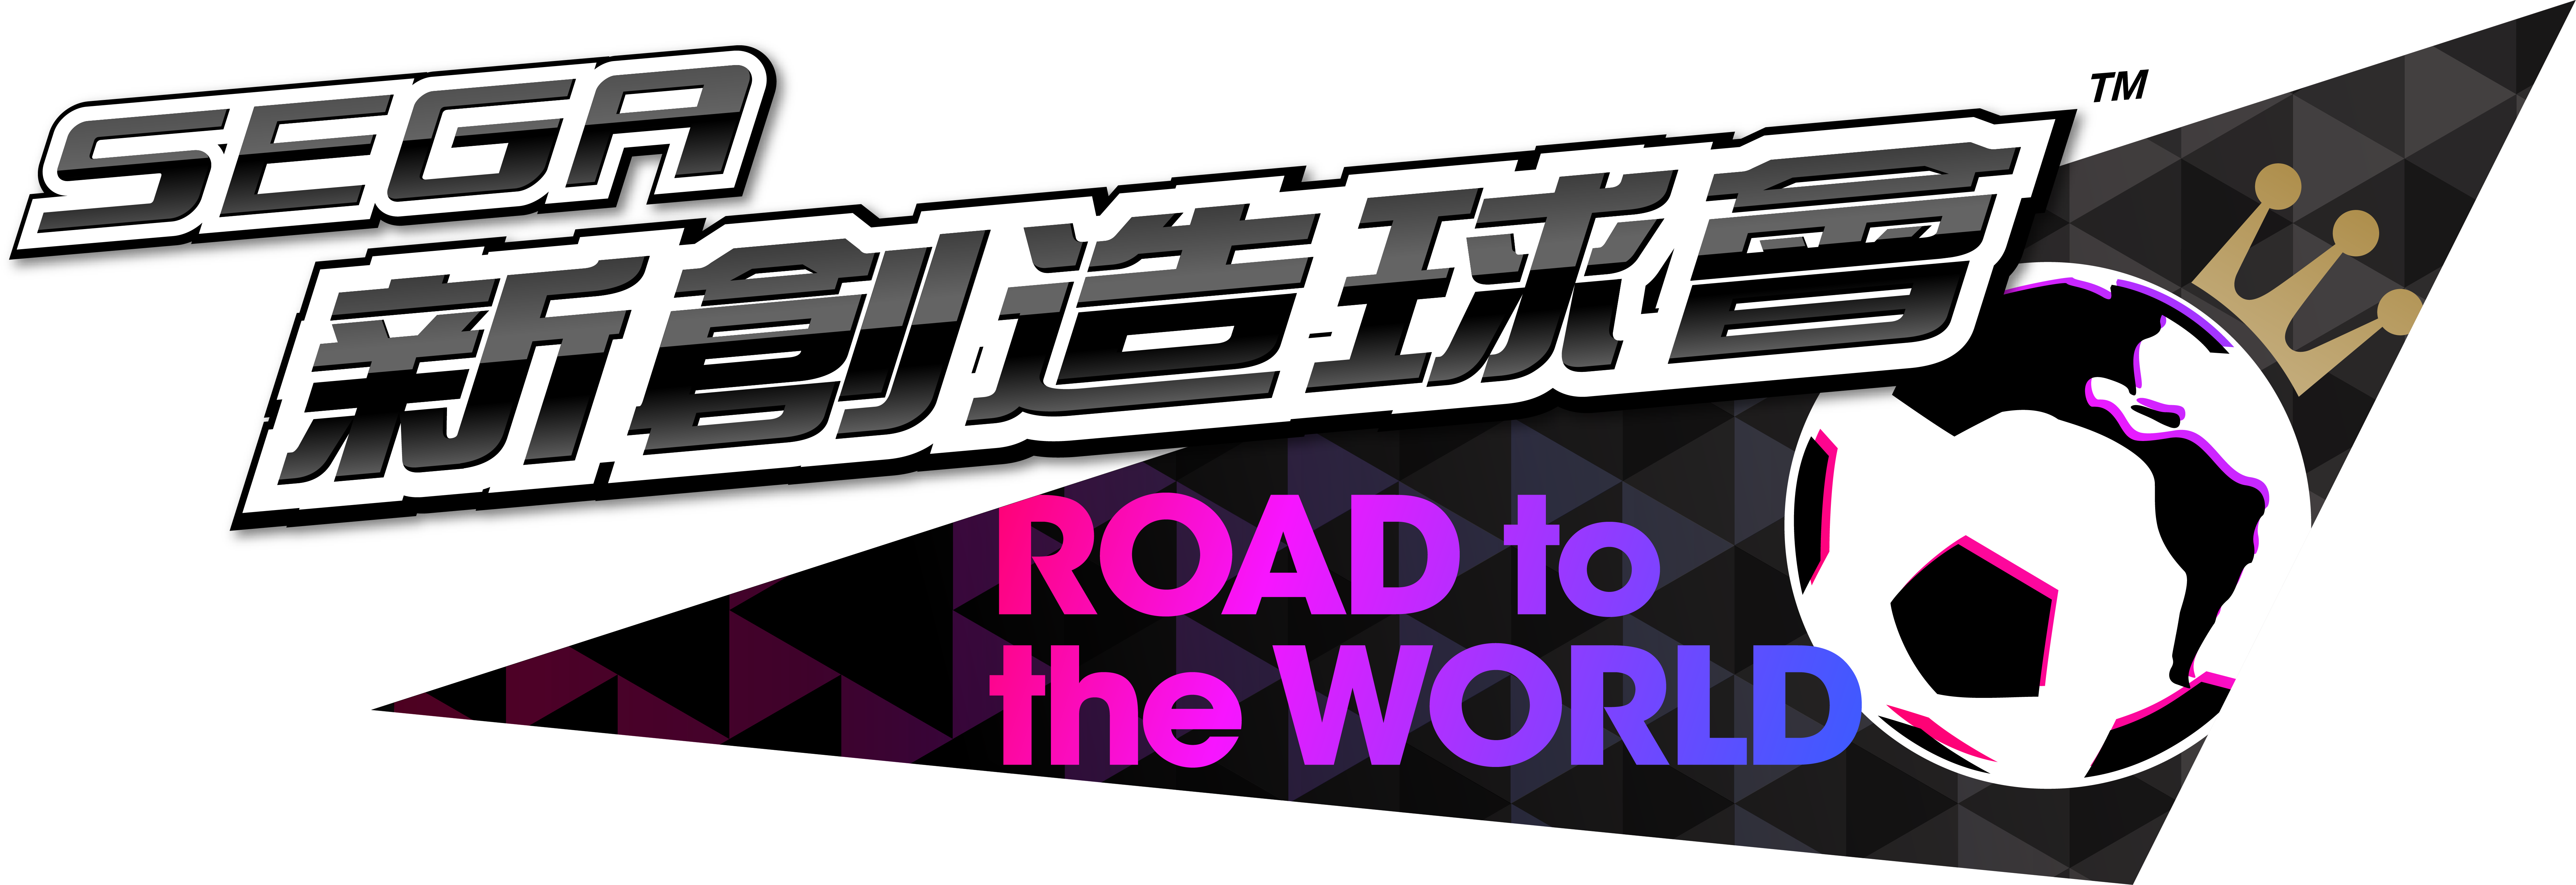 "『SEGA新創造球會 ROAD to the WORLD』 新活動""LEGEND MATCH・限定日MATCH""開跑! 同時舉辦可在""LEGEND MATCH""活躍的全新★5球員登場的PICK UP發掘"